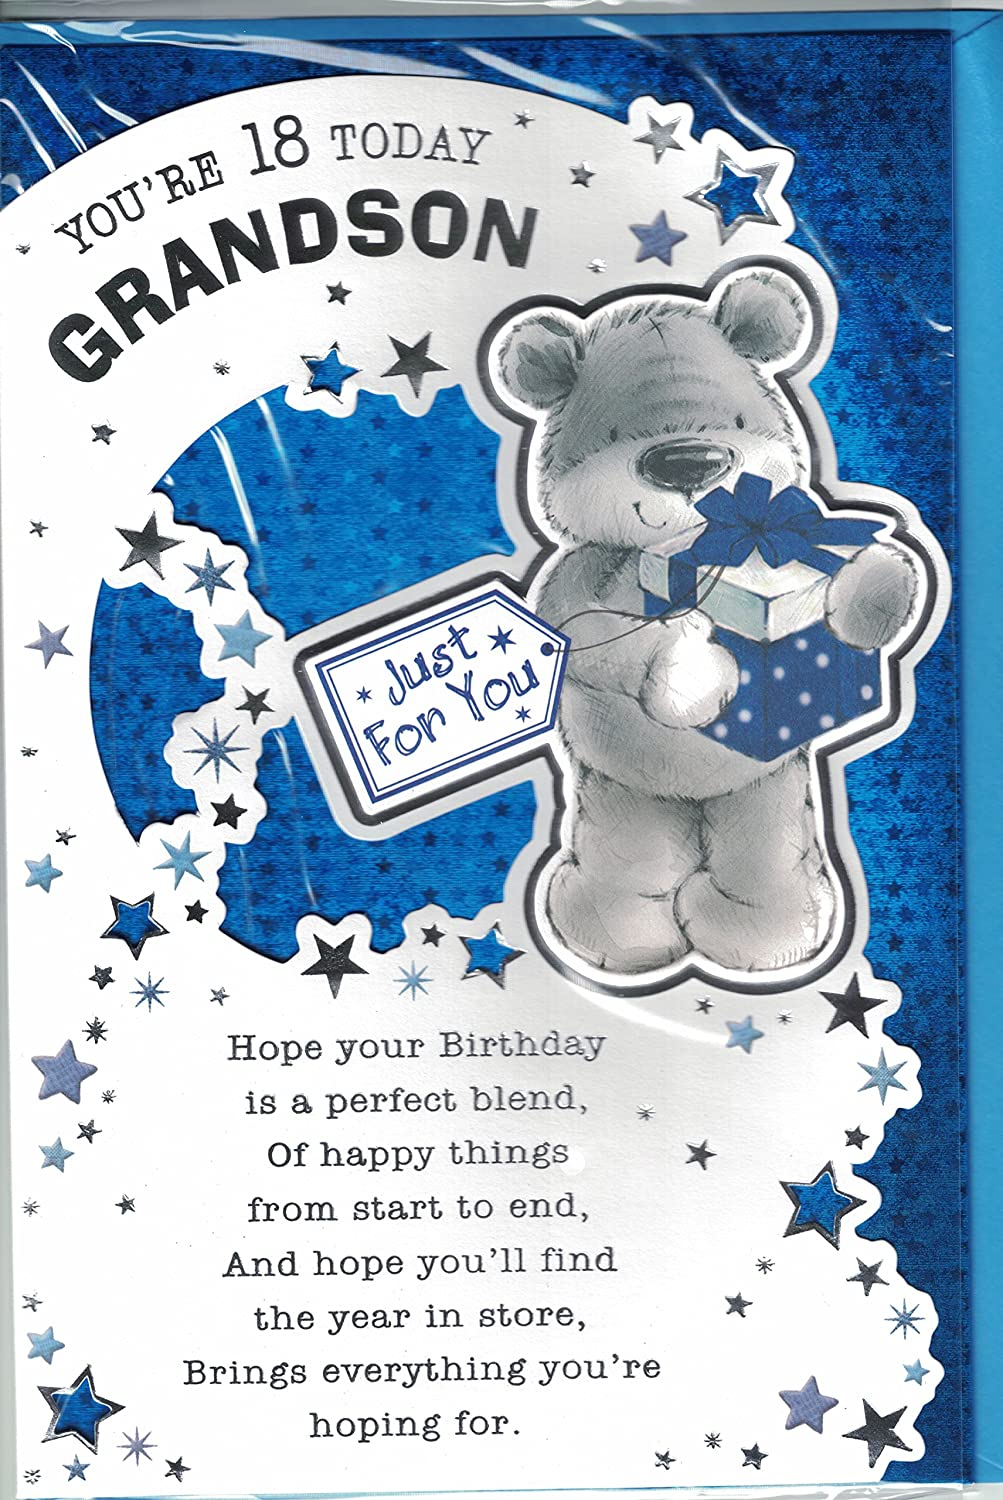 Grandson 18th birthday card youre 18 today grandson modern cute grandson 18th birthday card youre 18 today grandson modern cute 18th card amazon garden outdoors bookmarktalkfo Choice Image